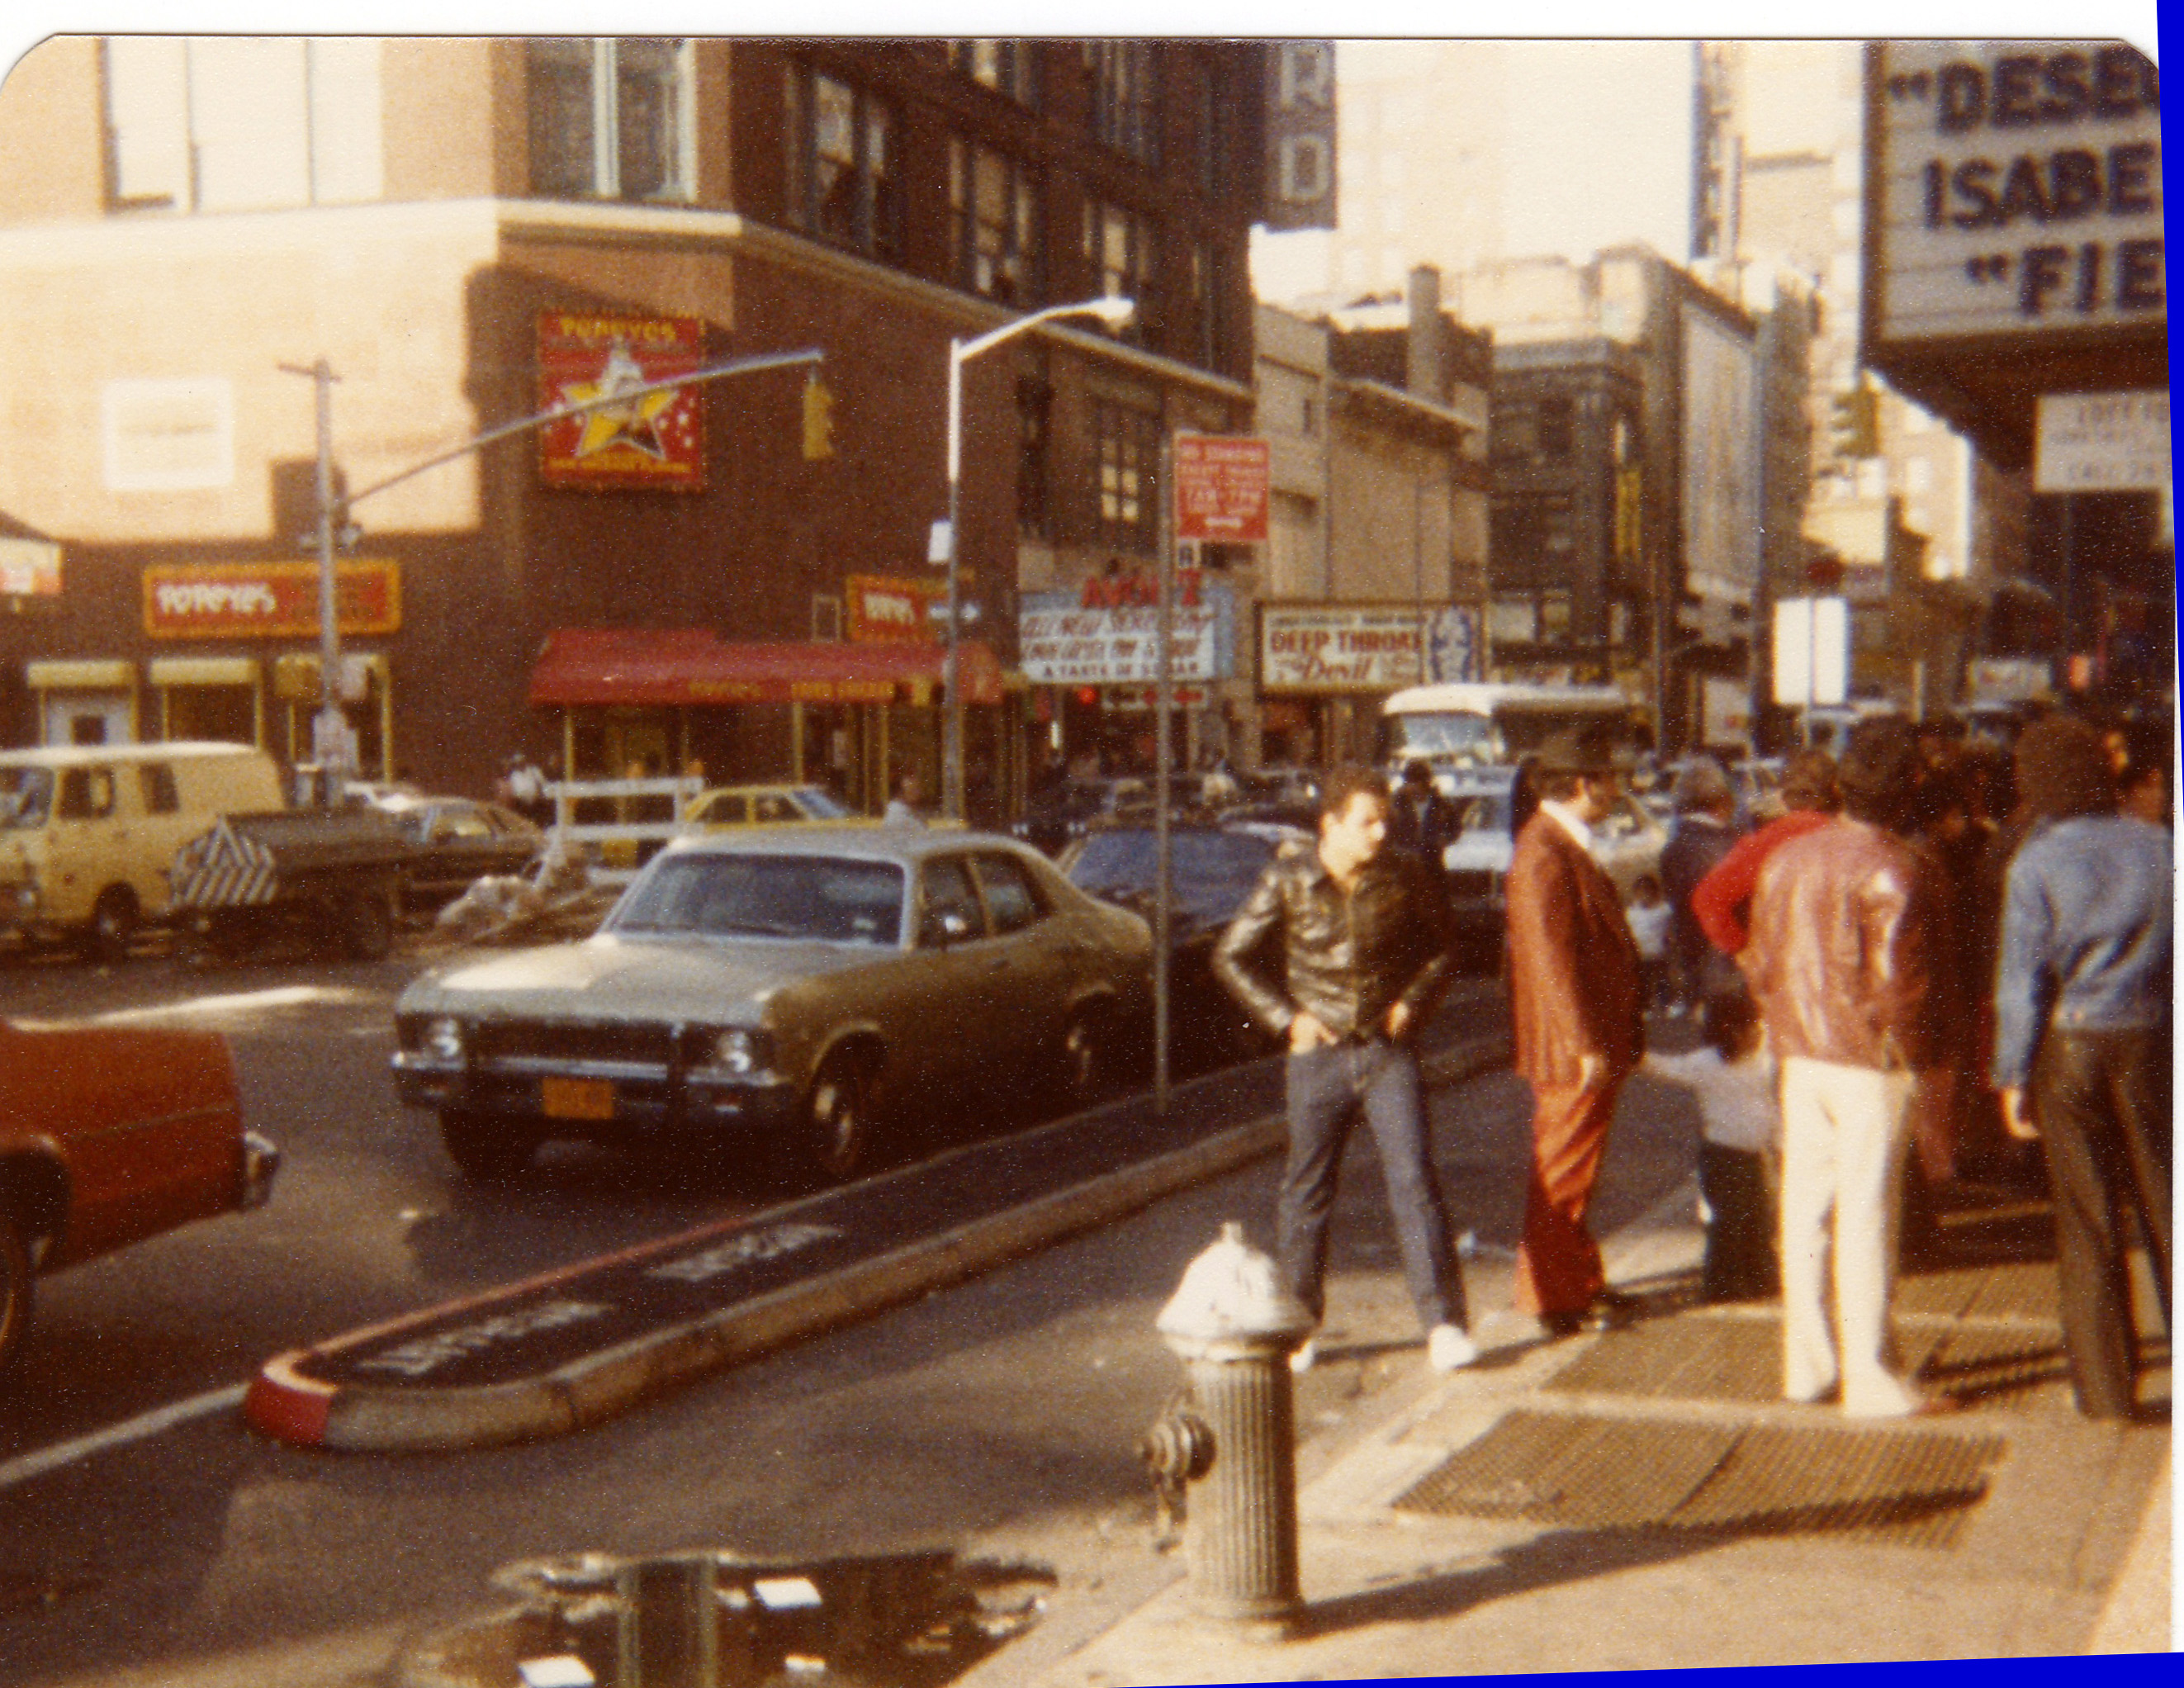 Udc793 travel leisure pursuits times square 1980 and times 198011nyc10019 fandeluxe Choice Image